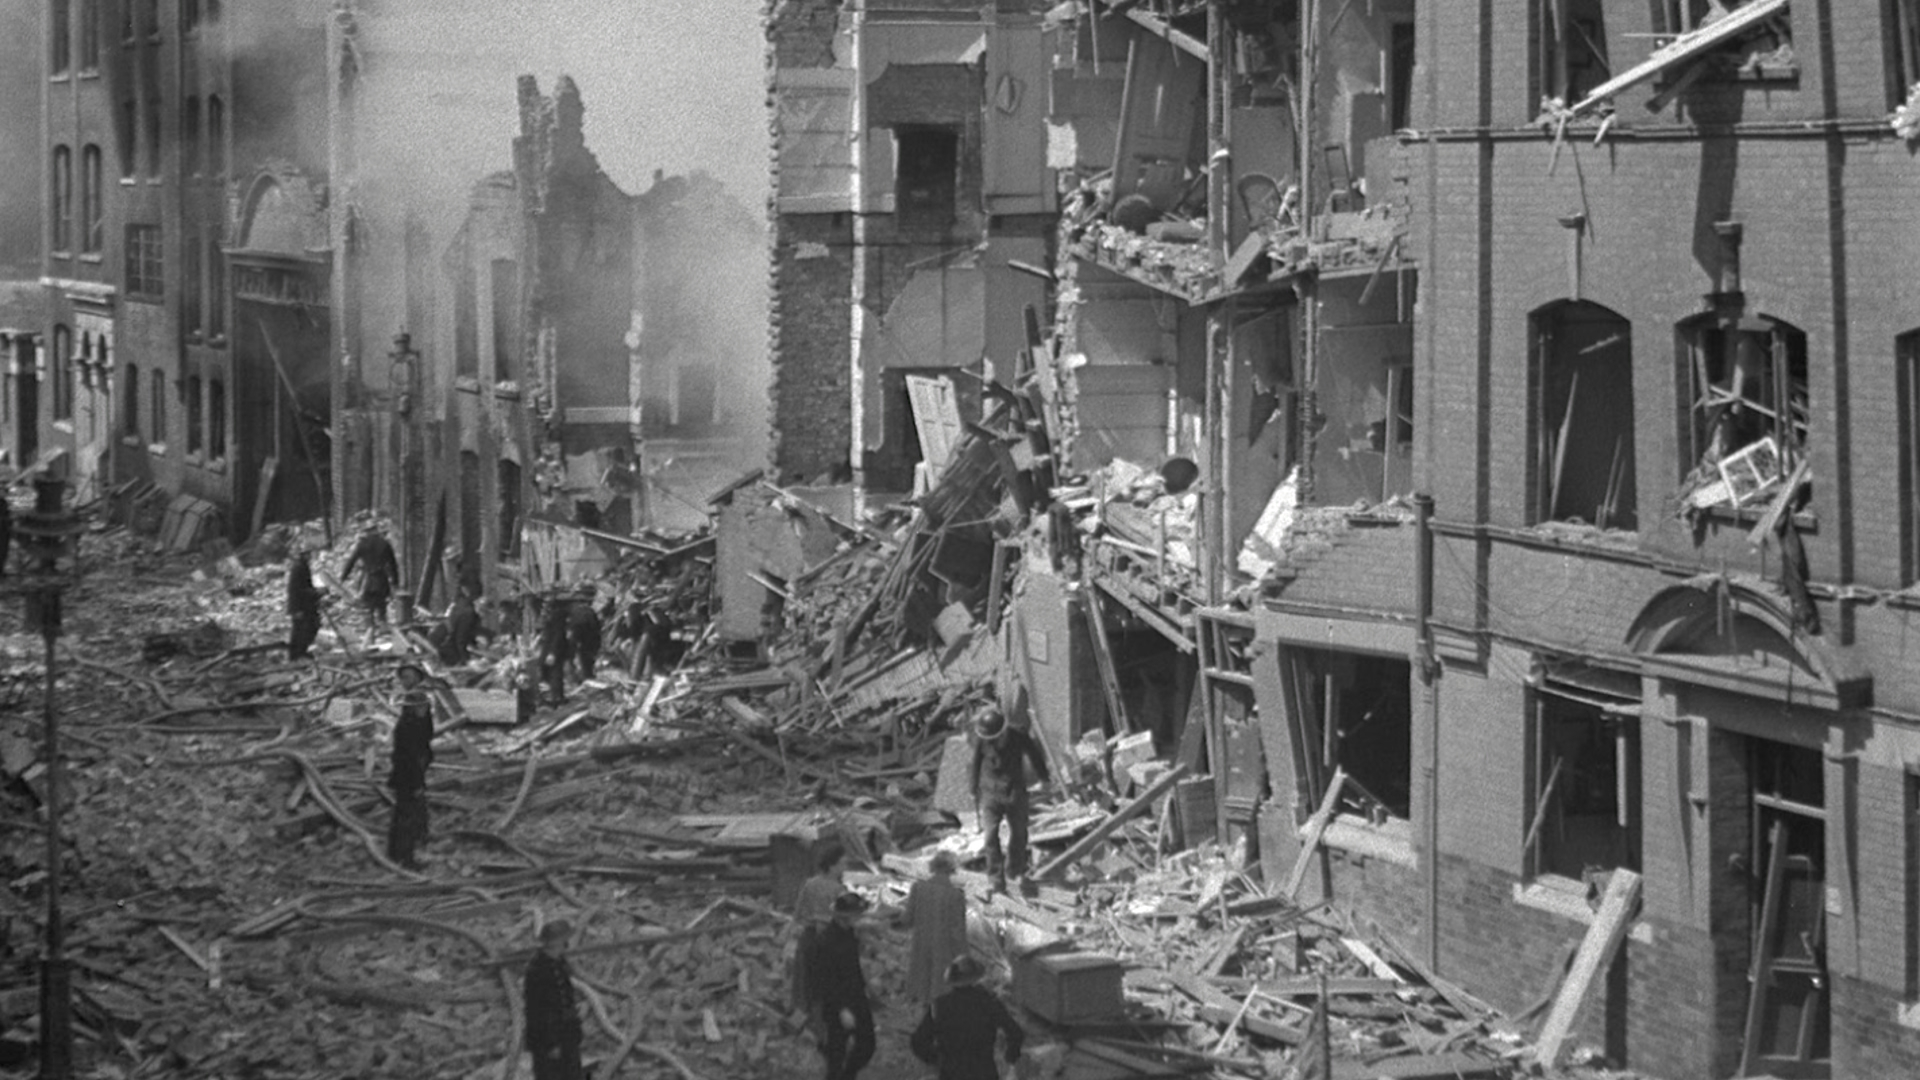 Bombing War, From Guernica to Hiroshima